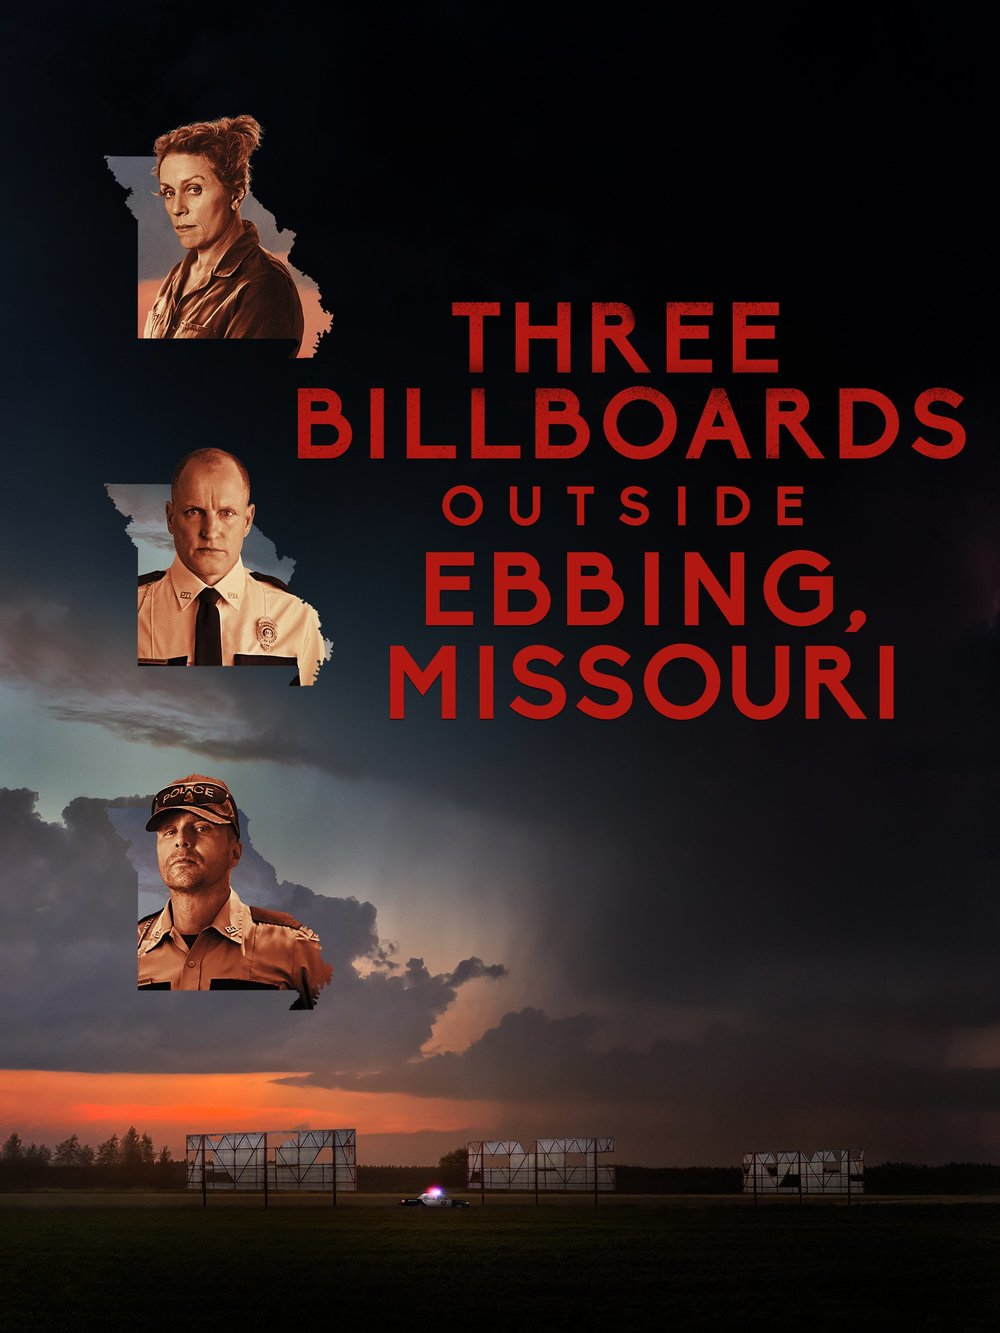 3 billboards.jpg